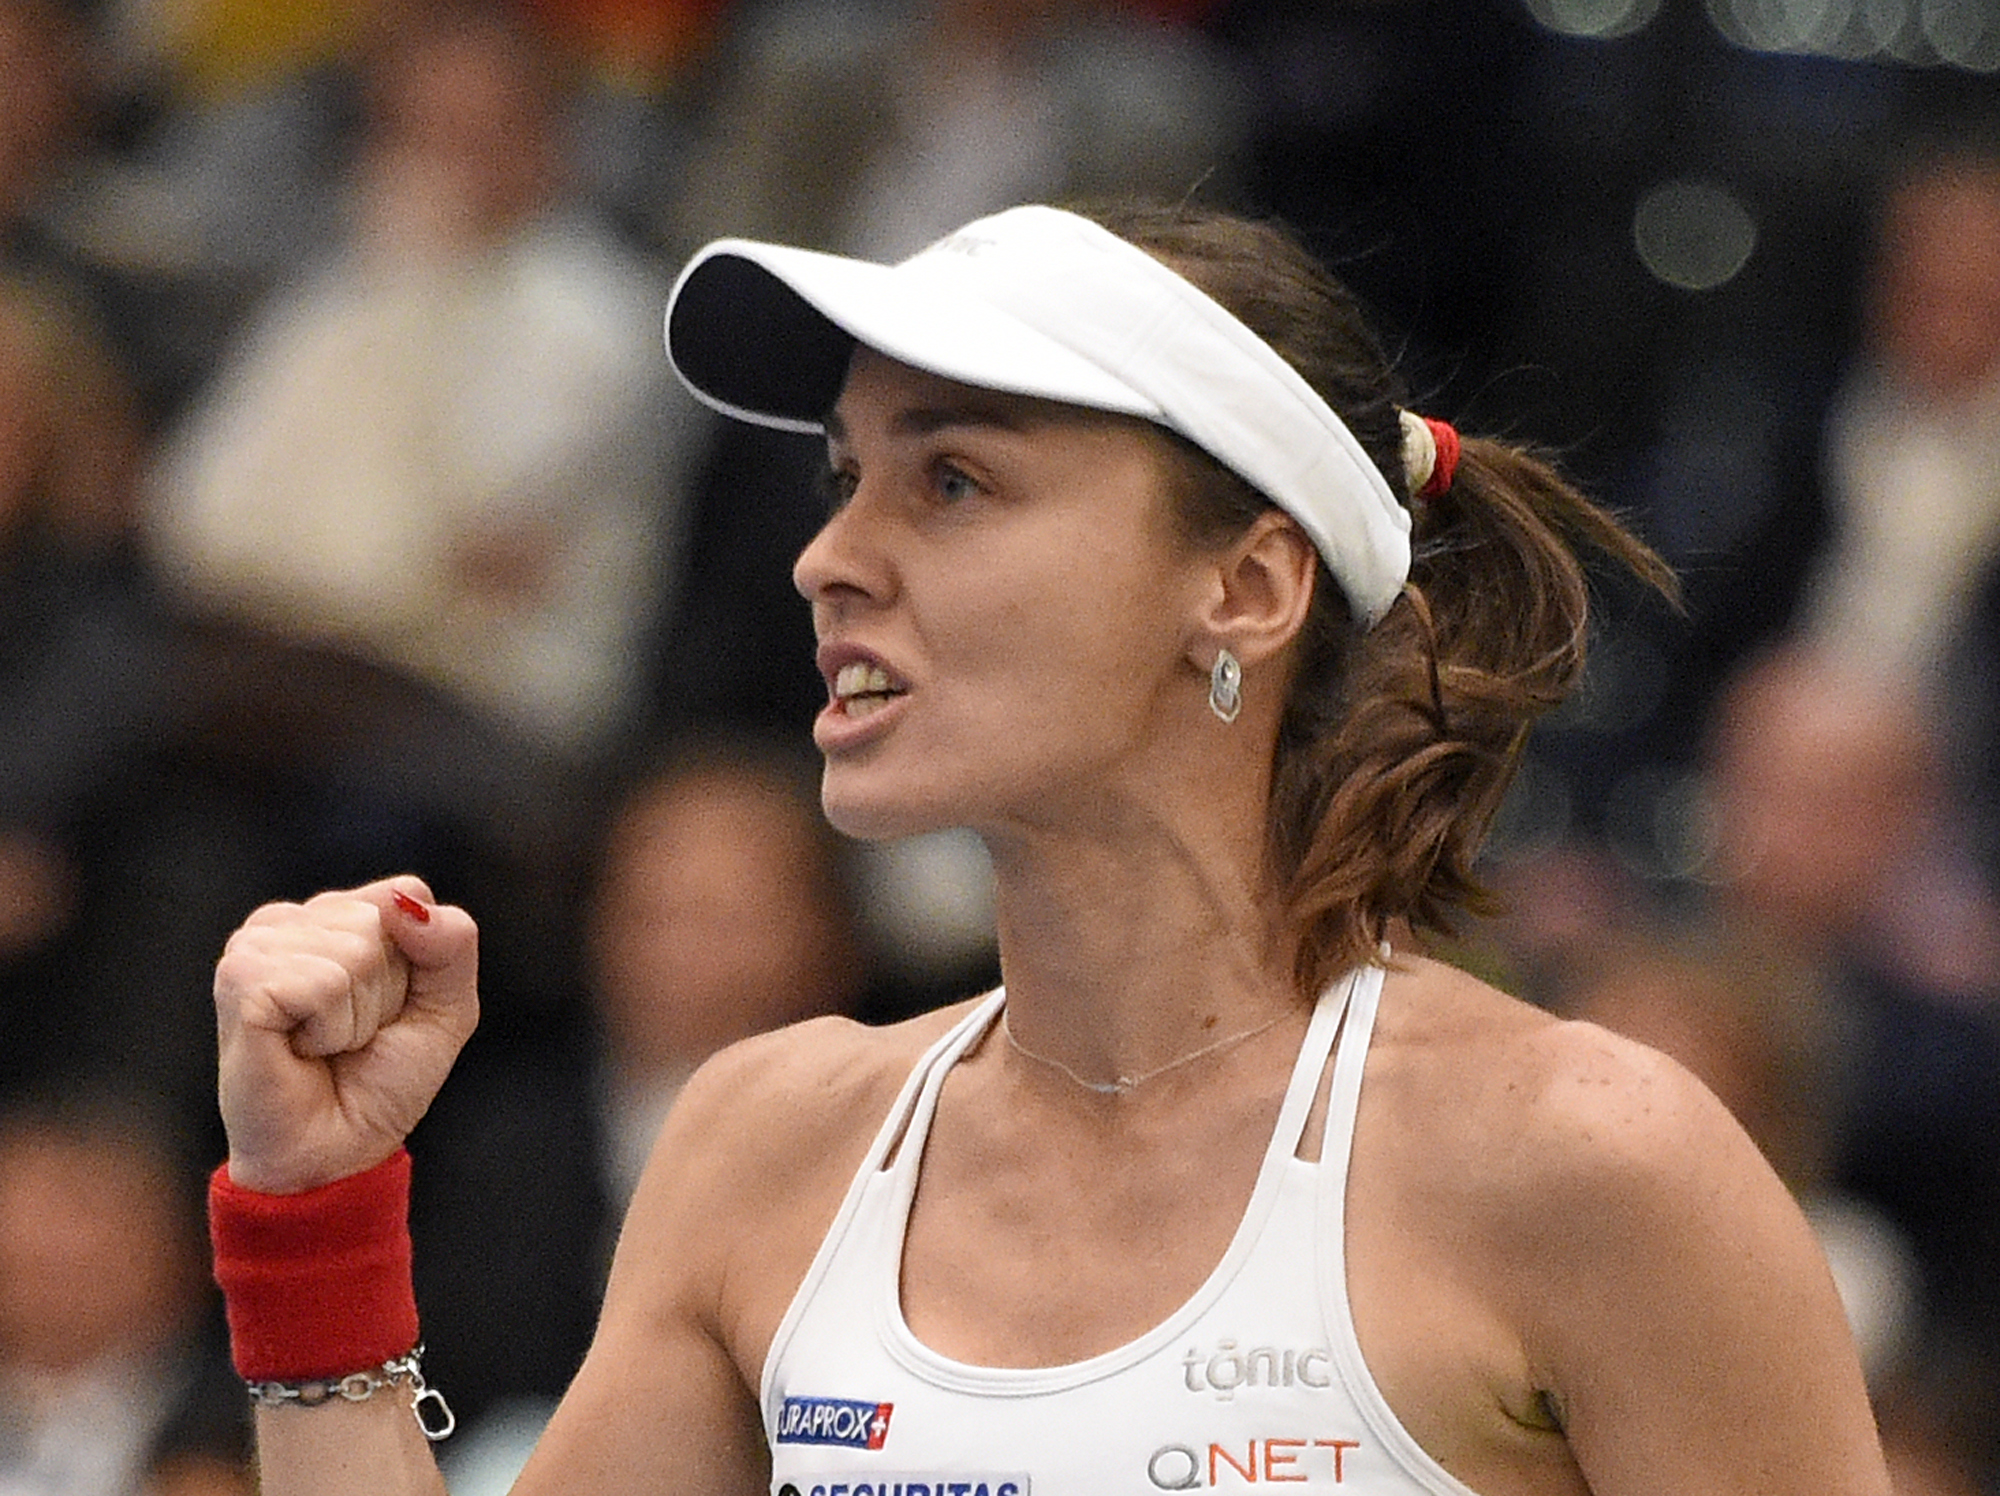 Martina Hingis of Switzerland celebrates a point in her doubles match during the Fed Cup World Group first round tennis match between Germany and Switzerland at the Leipzig Fair in Leipzig, Germany, Sunday, Feb. 7, 2016. (AP Photo/Jens Meyer)